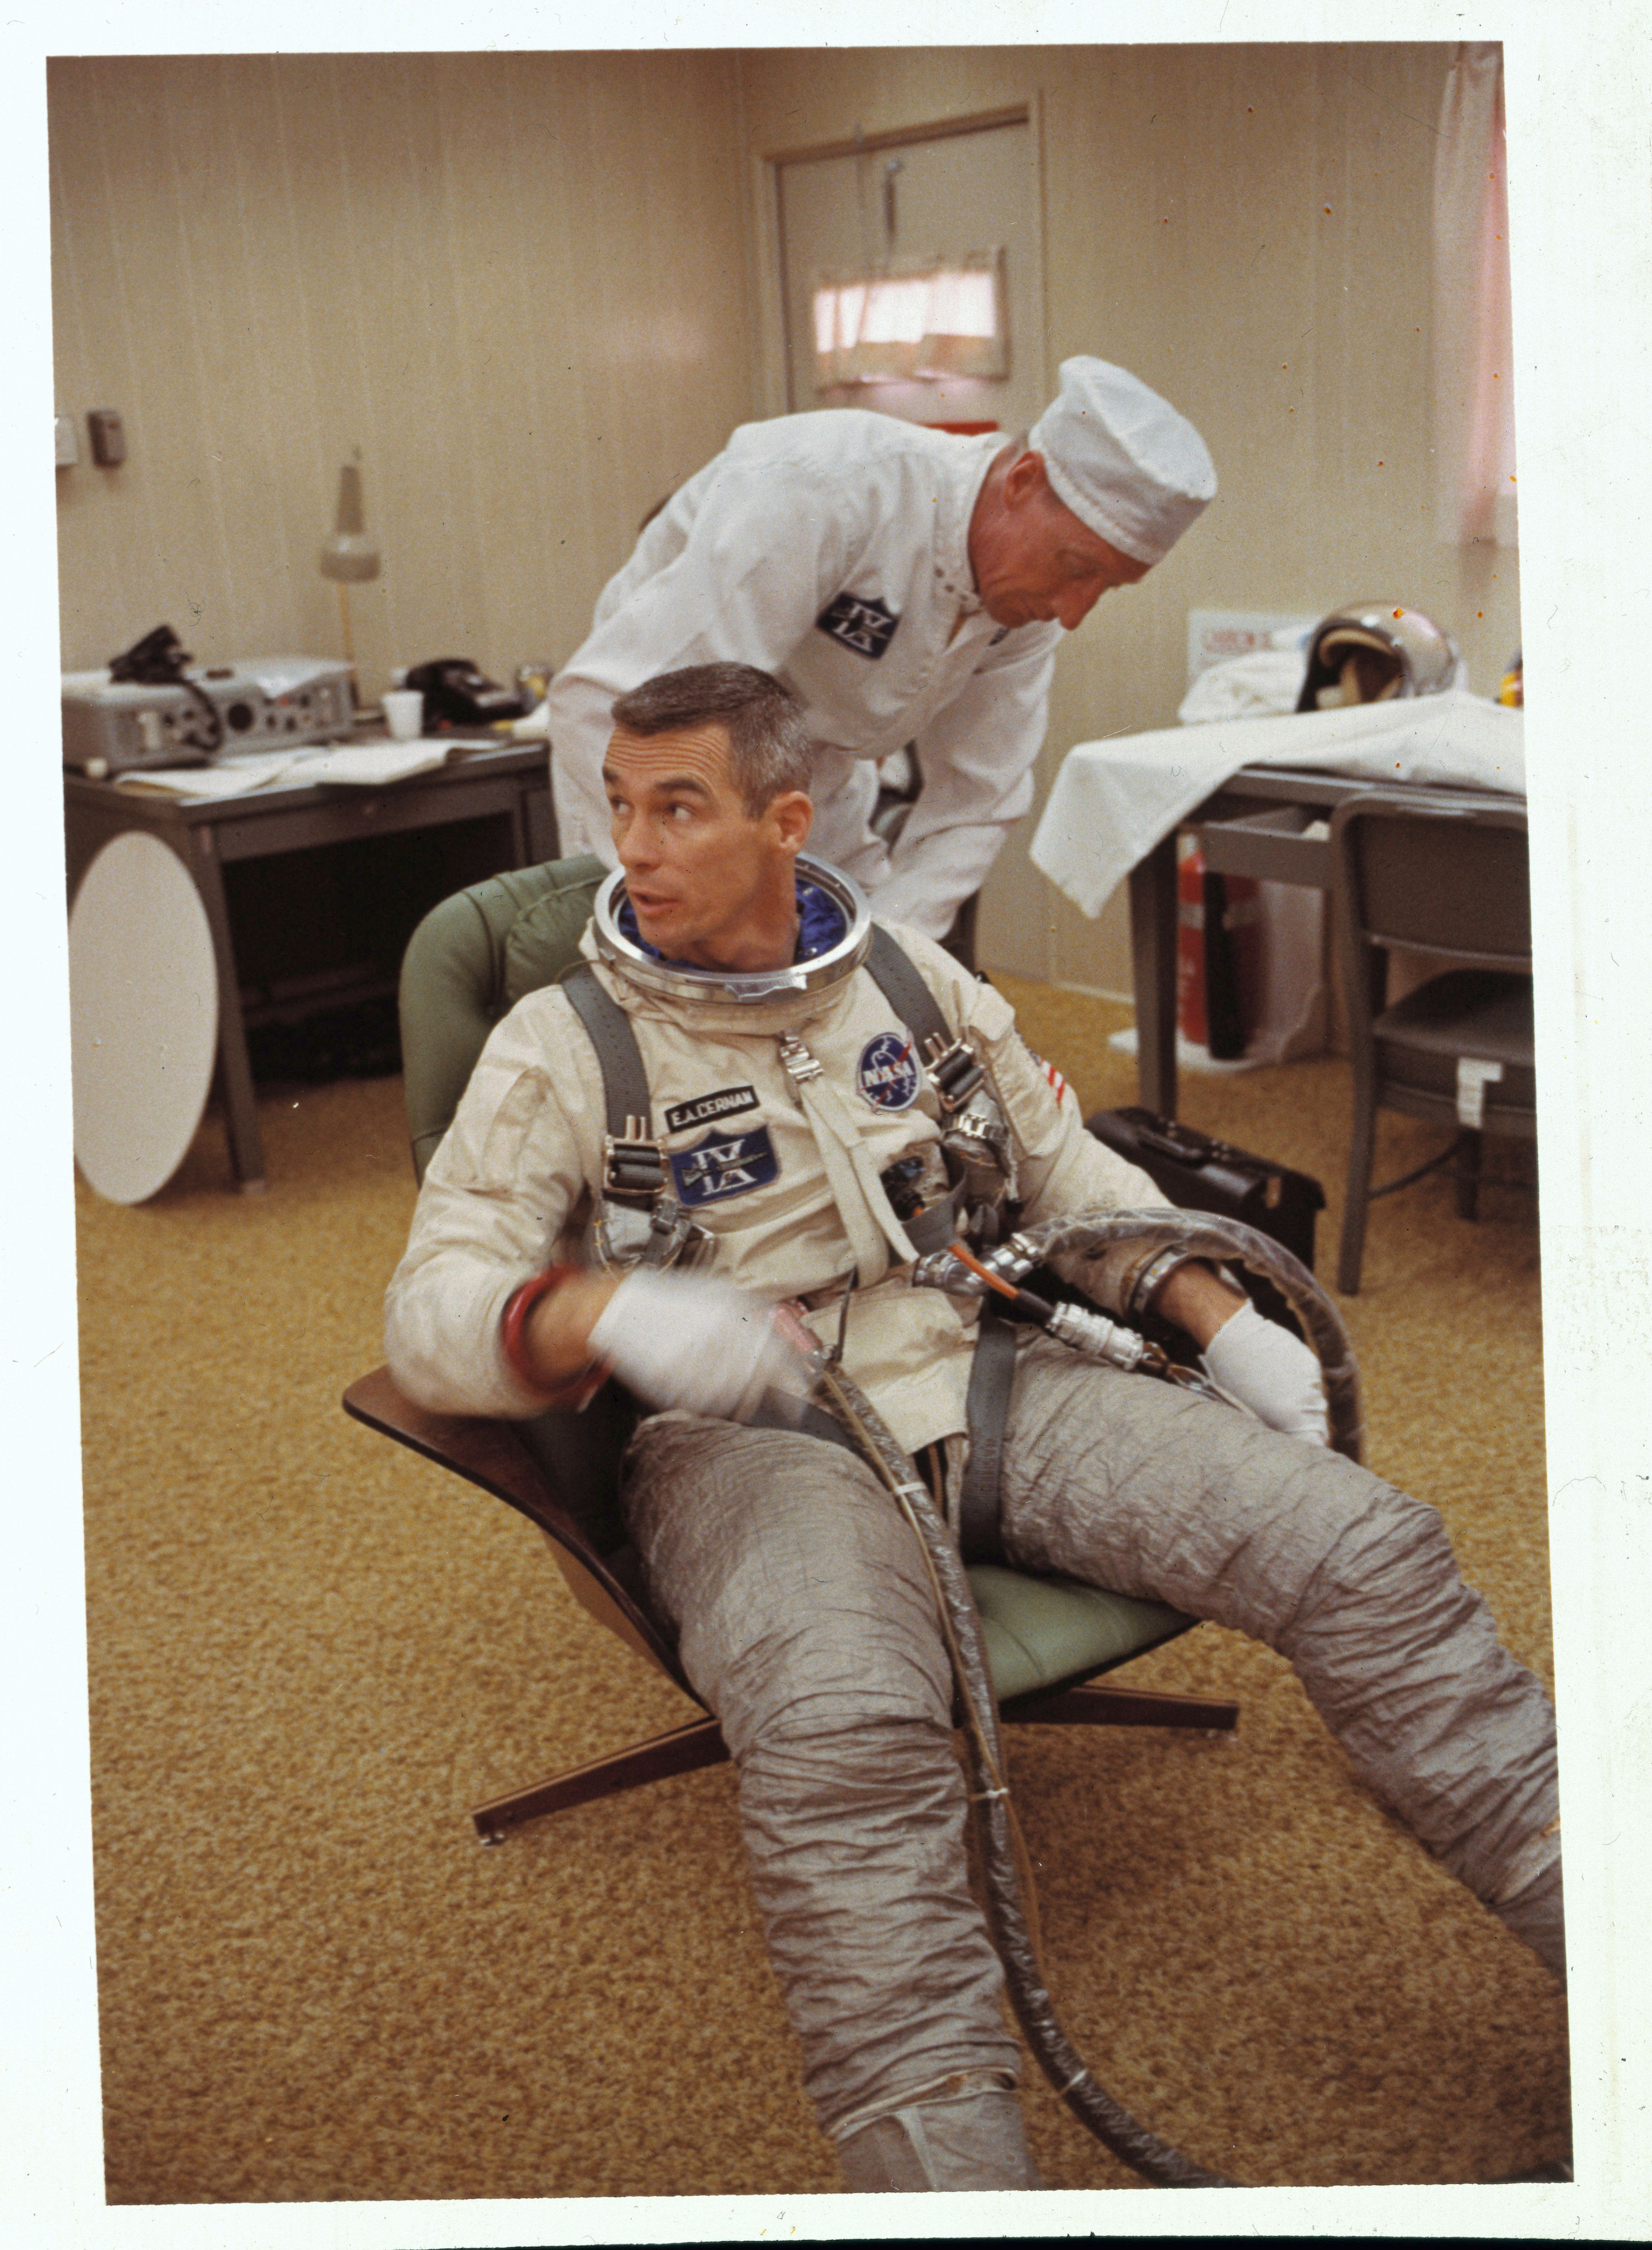 The Last Man To Walk On The Moon Has